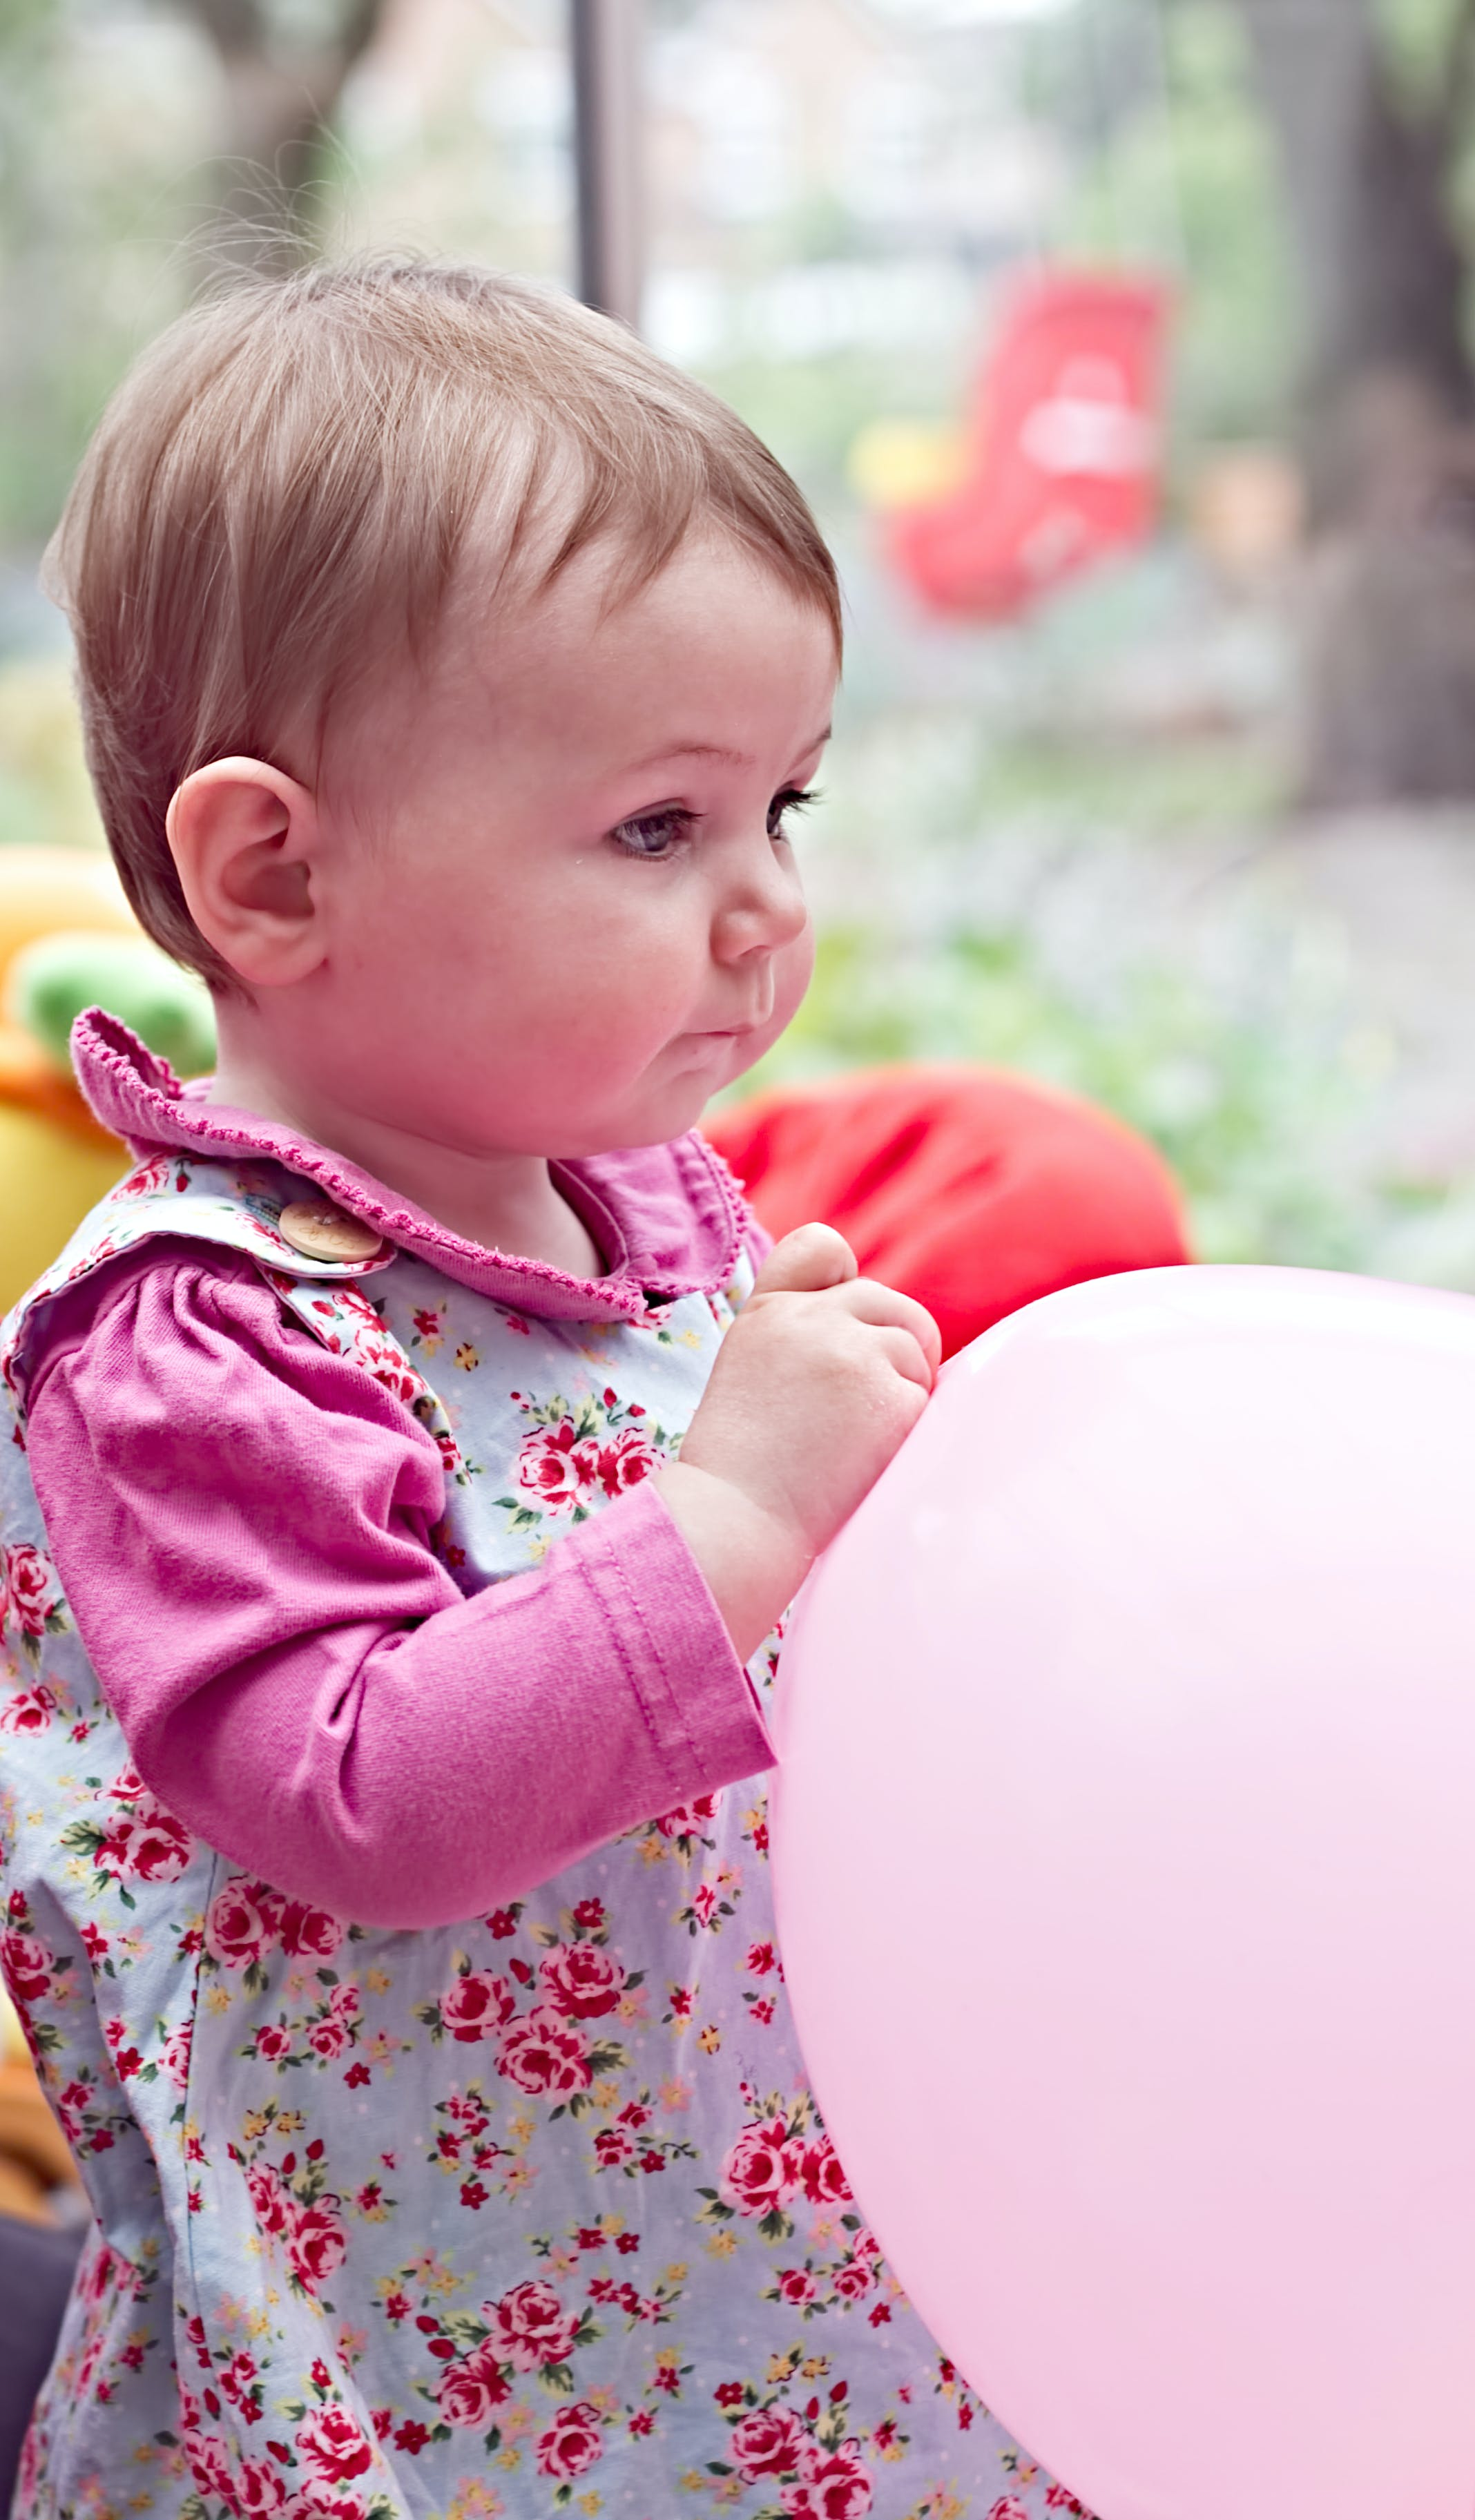 Free stock photo of baloon, pink, thinking